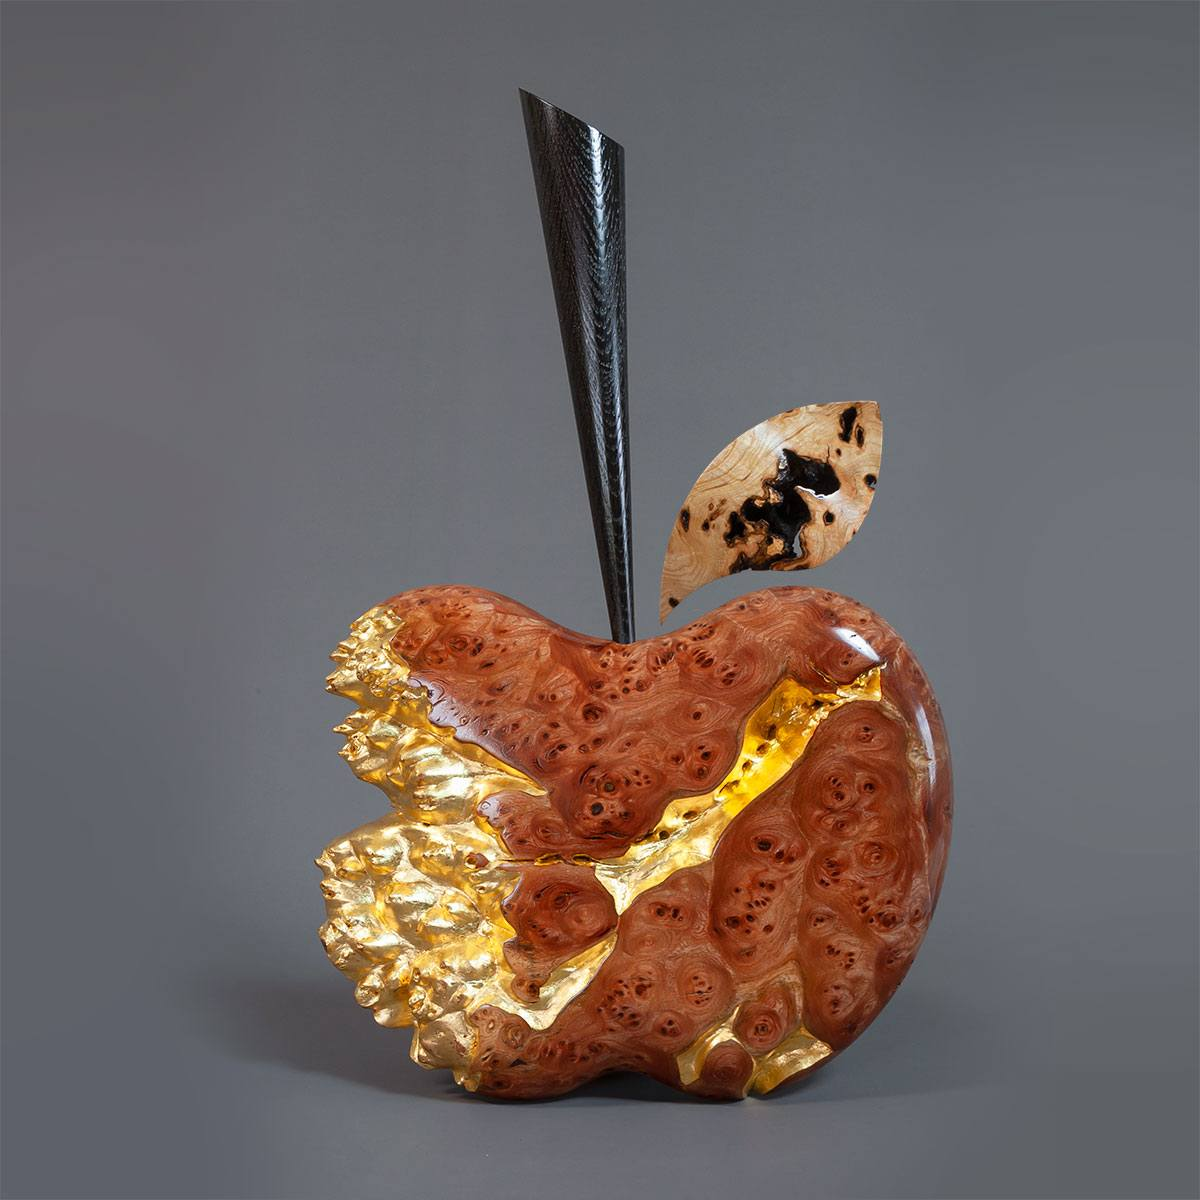 Burr Elm and Gold leaf apple sculpture